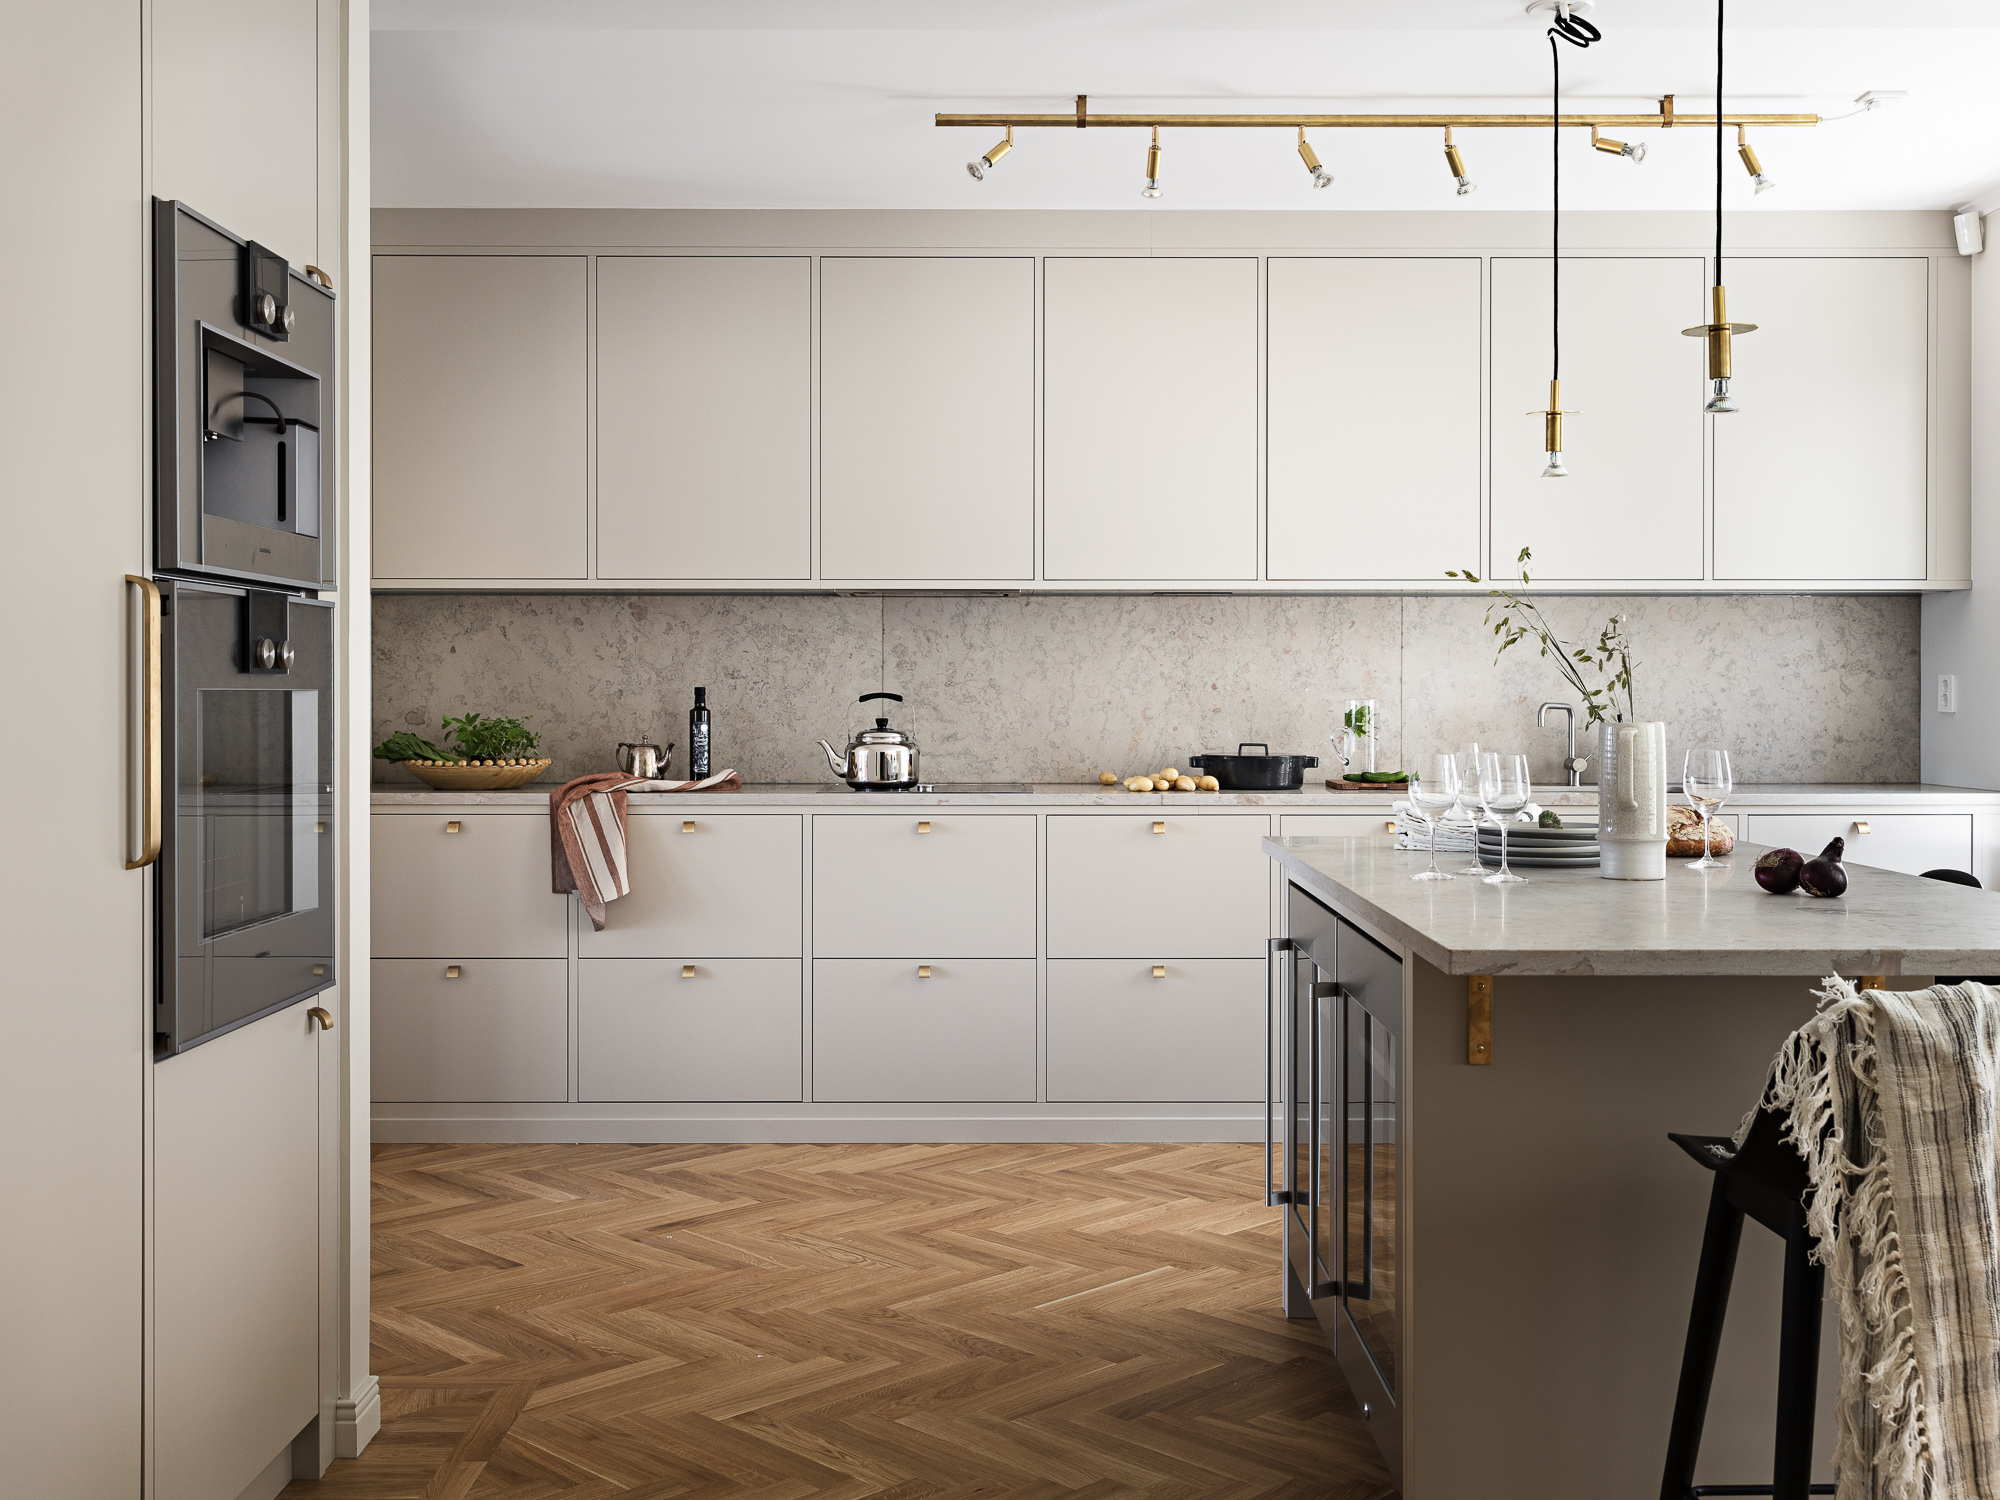 High End Kitchen Design Images High End Kitchen In Beige Coco Lapine Designcoco Lapine